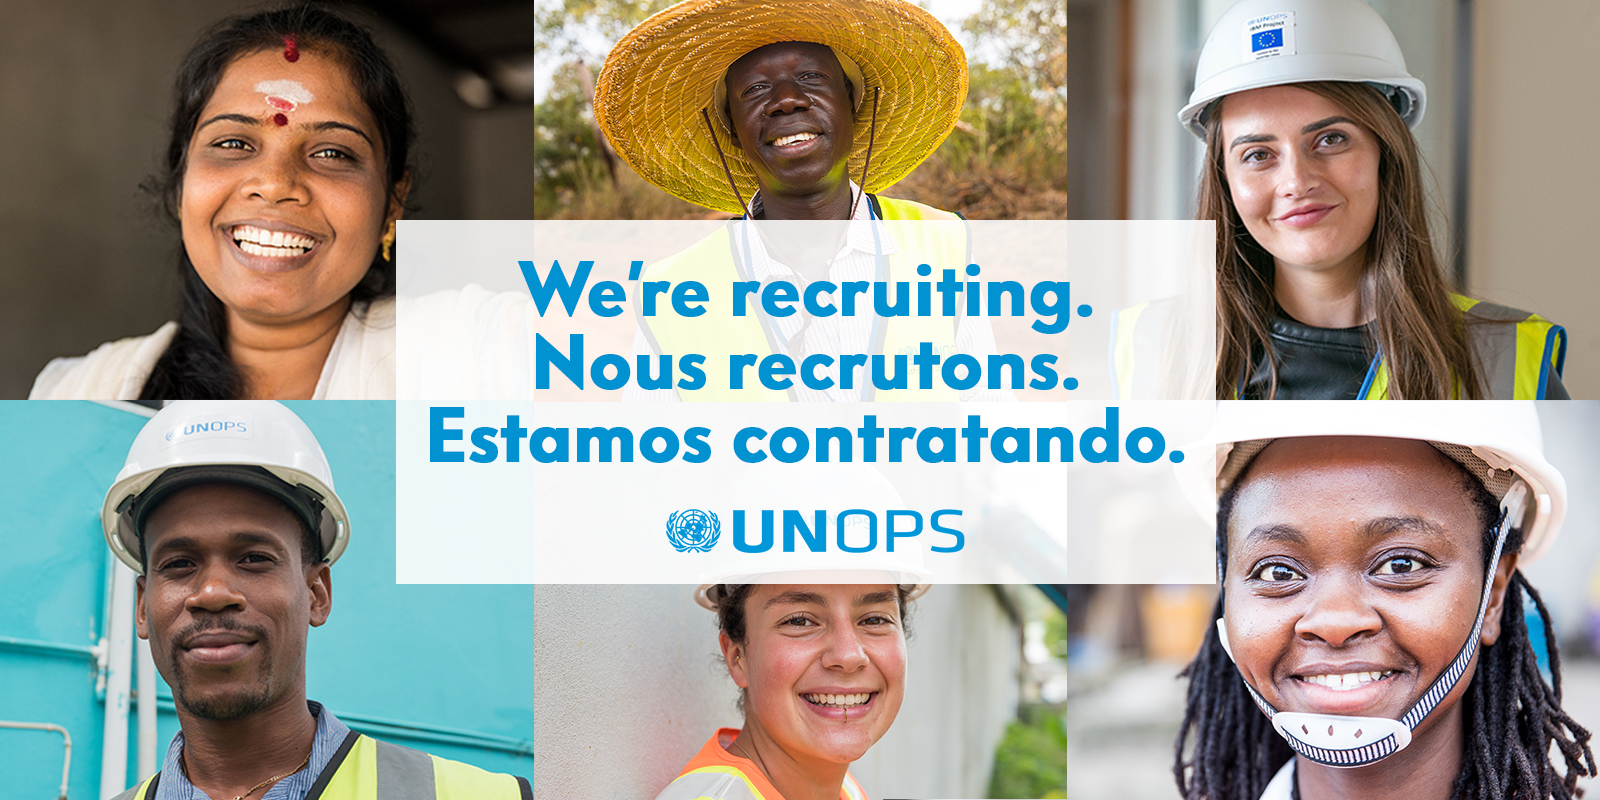 UNOPS Jobs | Opportunities at UNOPS